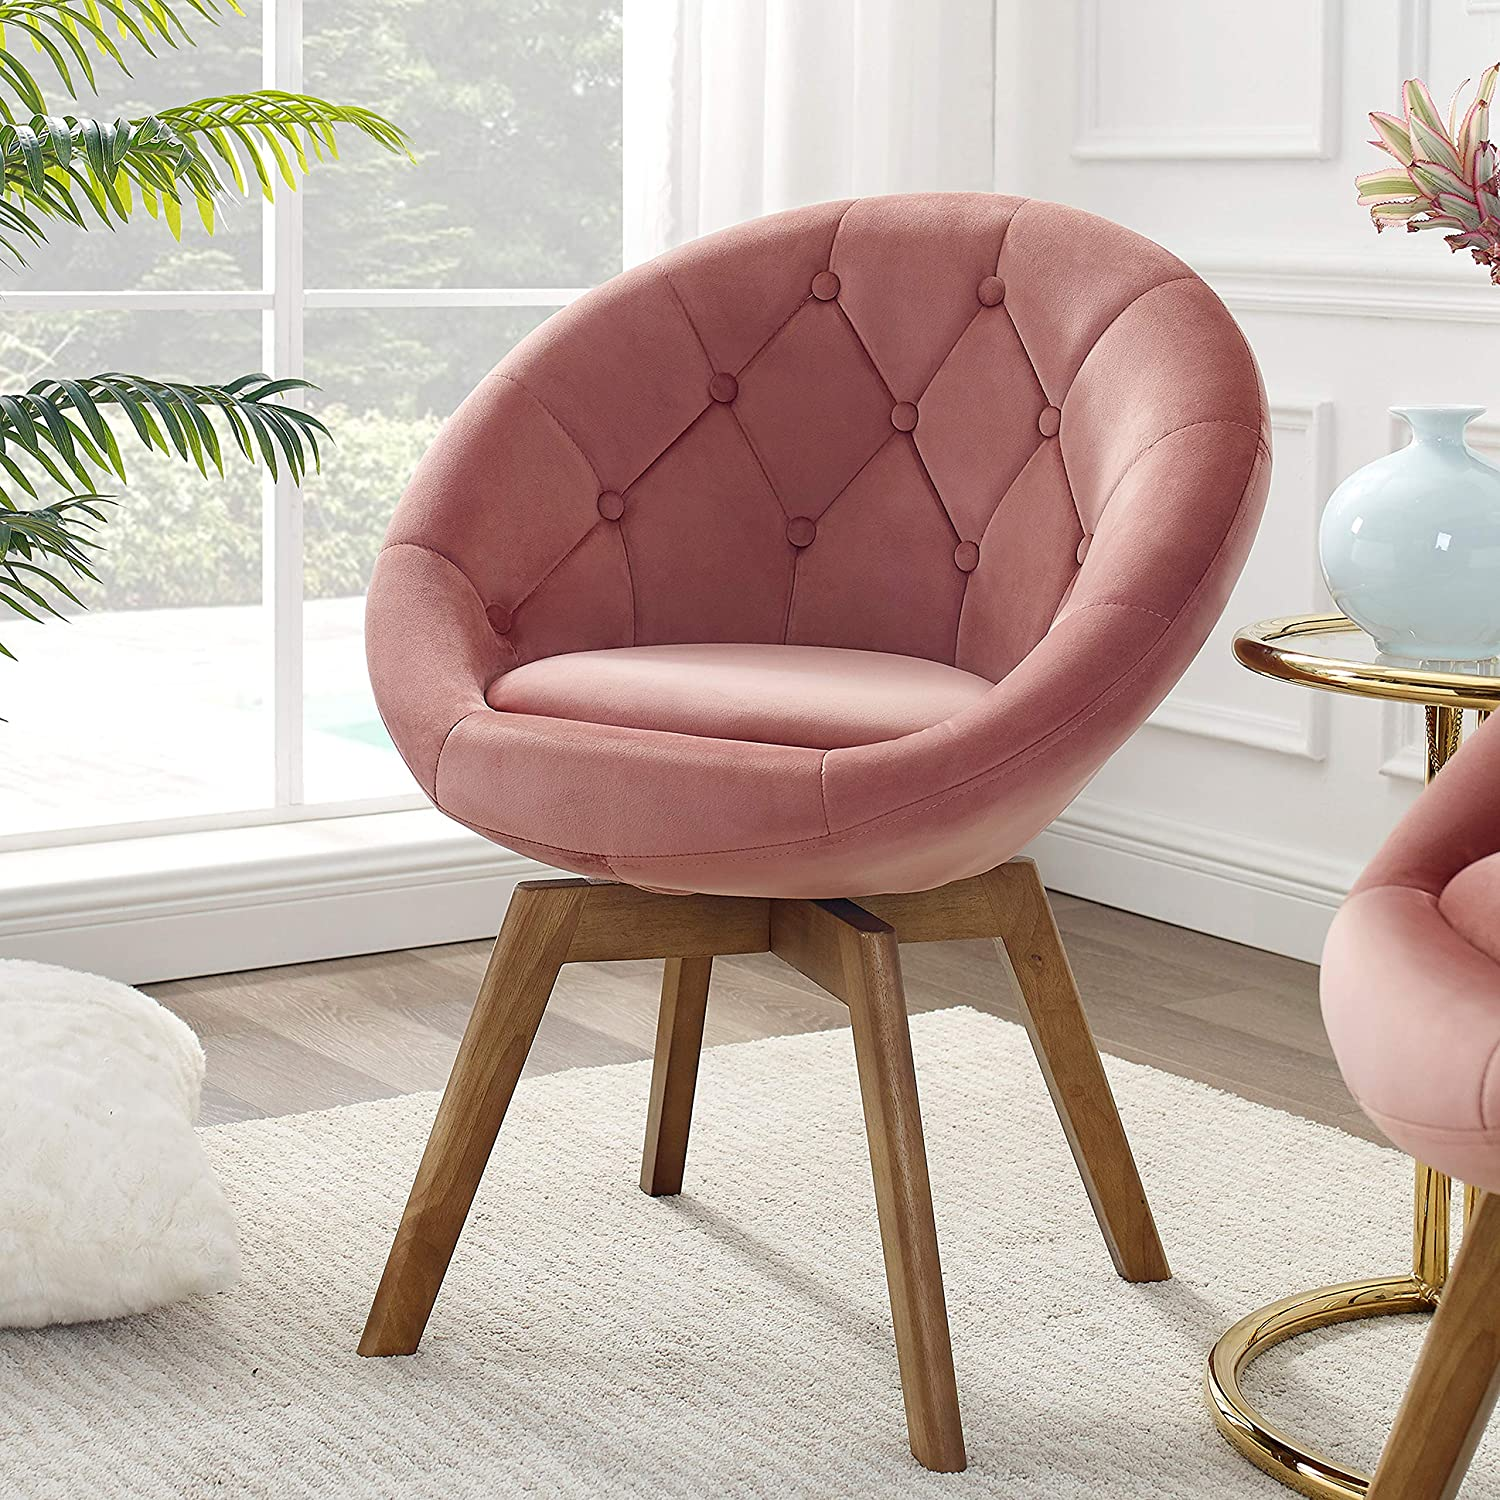 Volans Mid Century Modern Velvet Tufted Round Back Upholstered Swivel Accent Chair Pink with Wood Legs Vanity Chair, Home Office Desk Chair for Living Room Bedroom Study